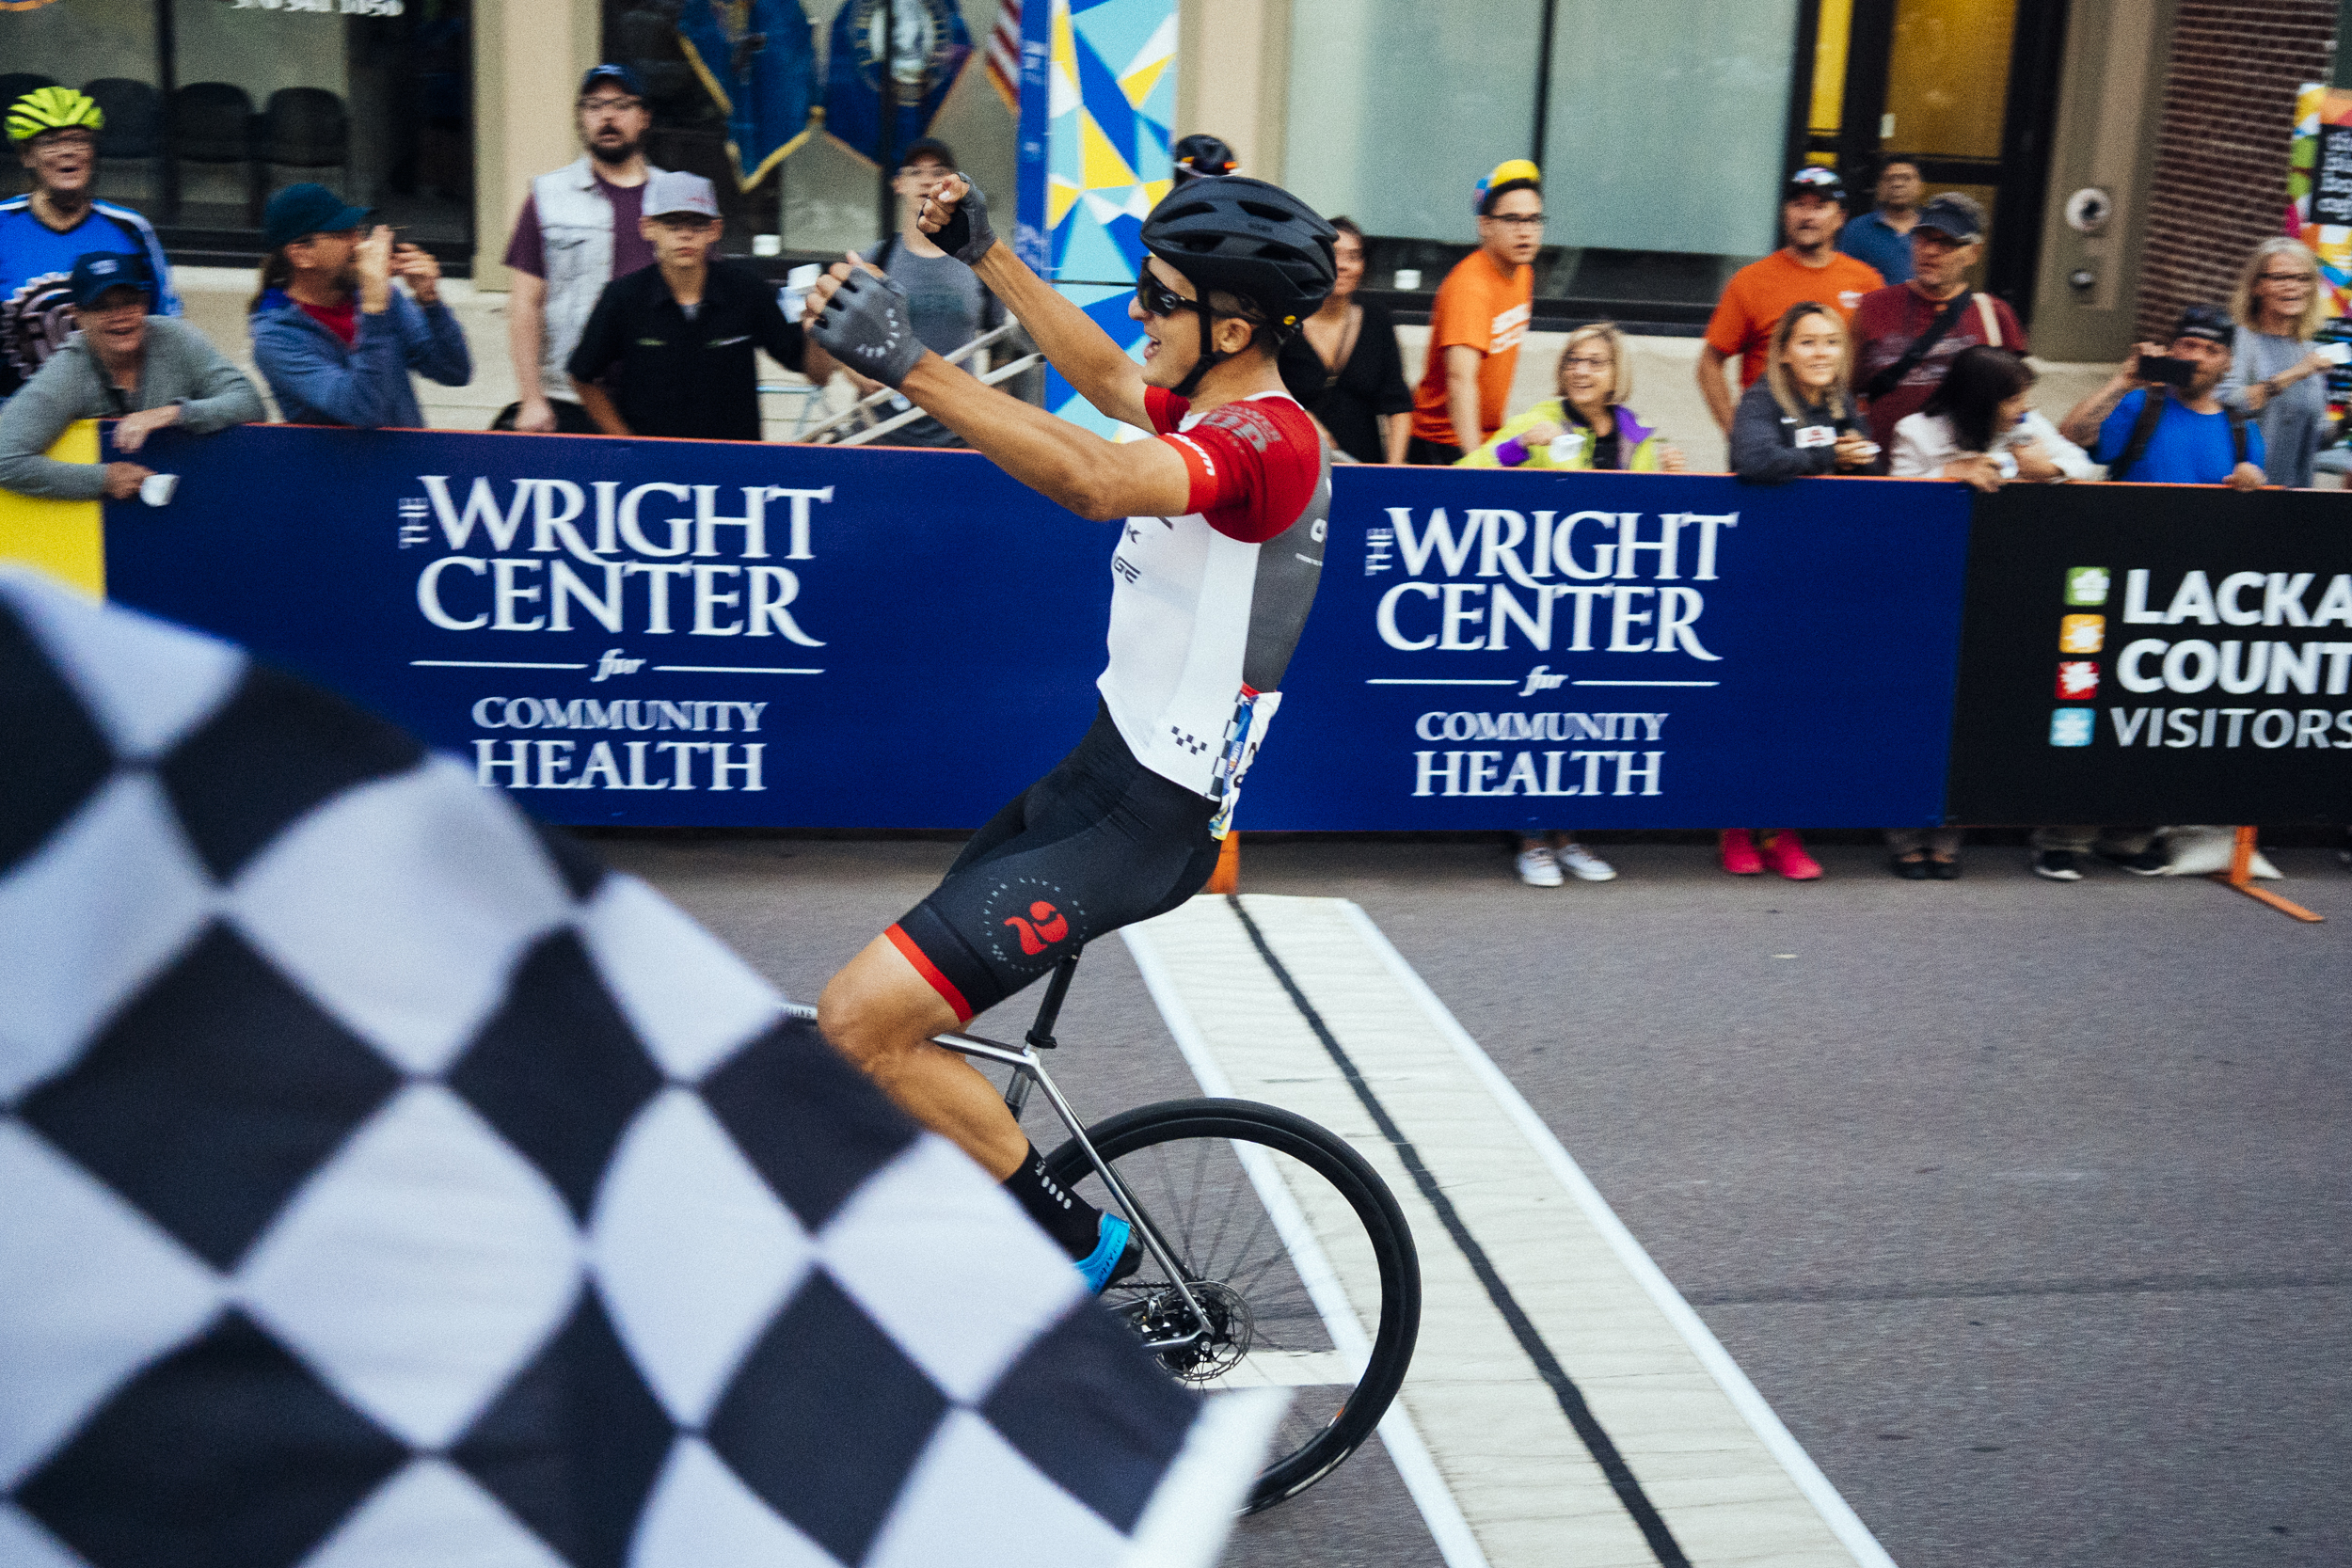 Bryan Gomez crosses the line on Wyoming Ave to take the Pro win